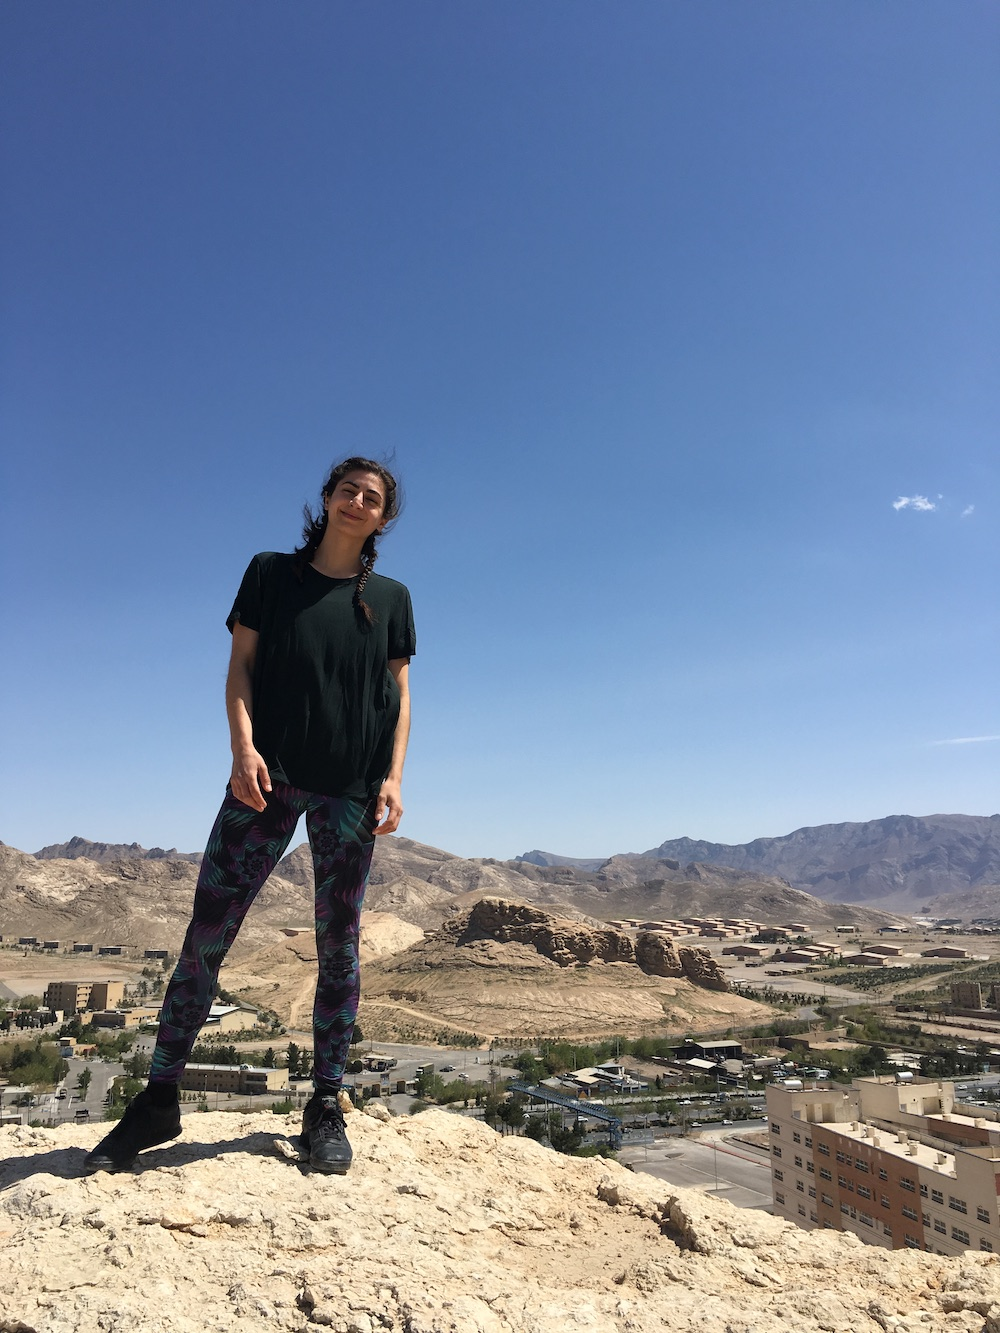 Portrait of the author standing on a rock outcropping with a city behind her